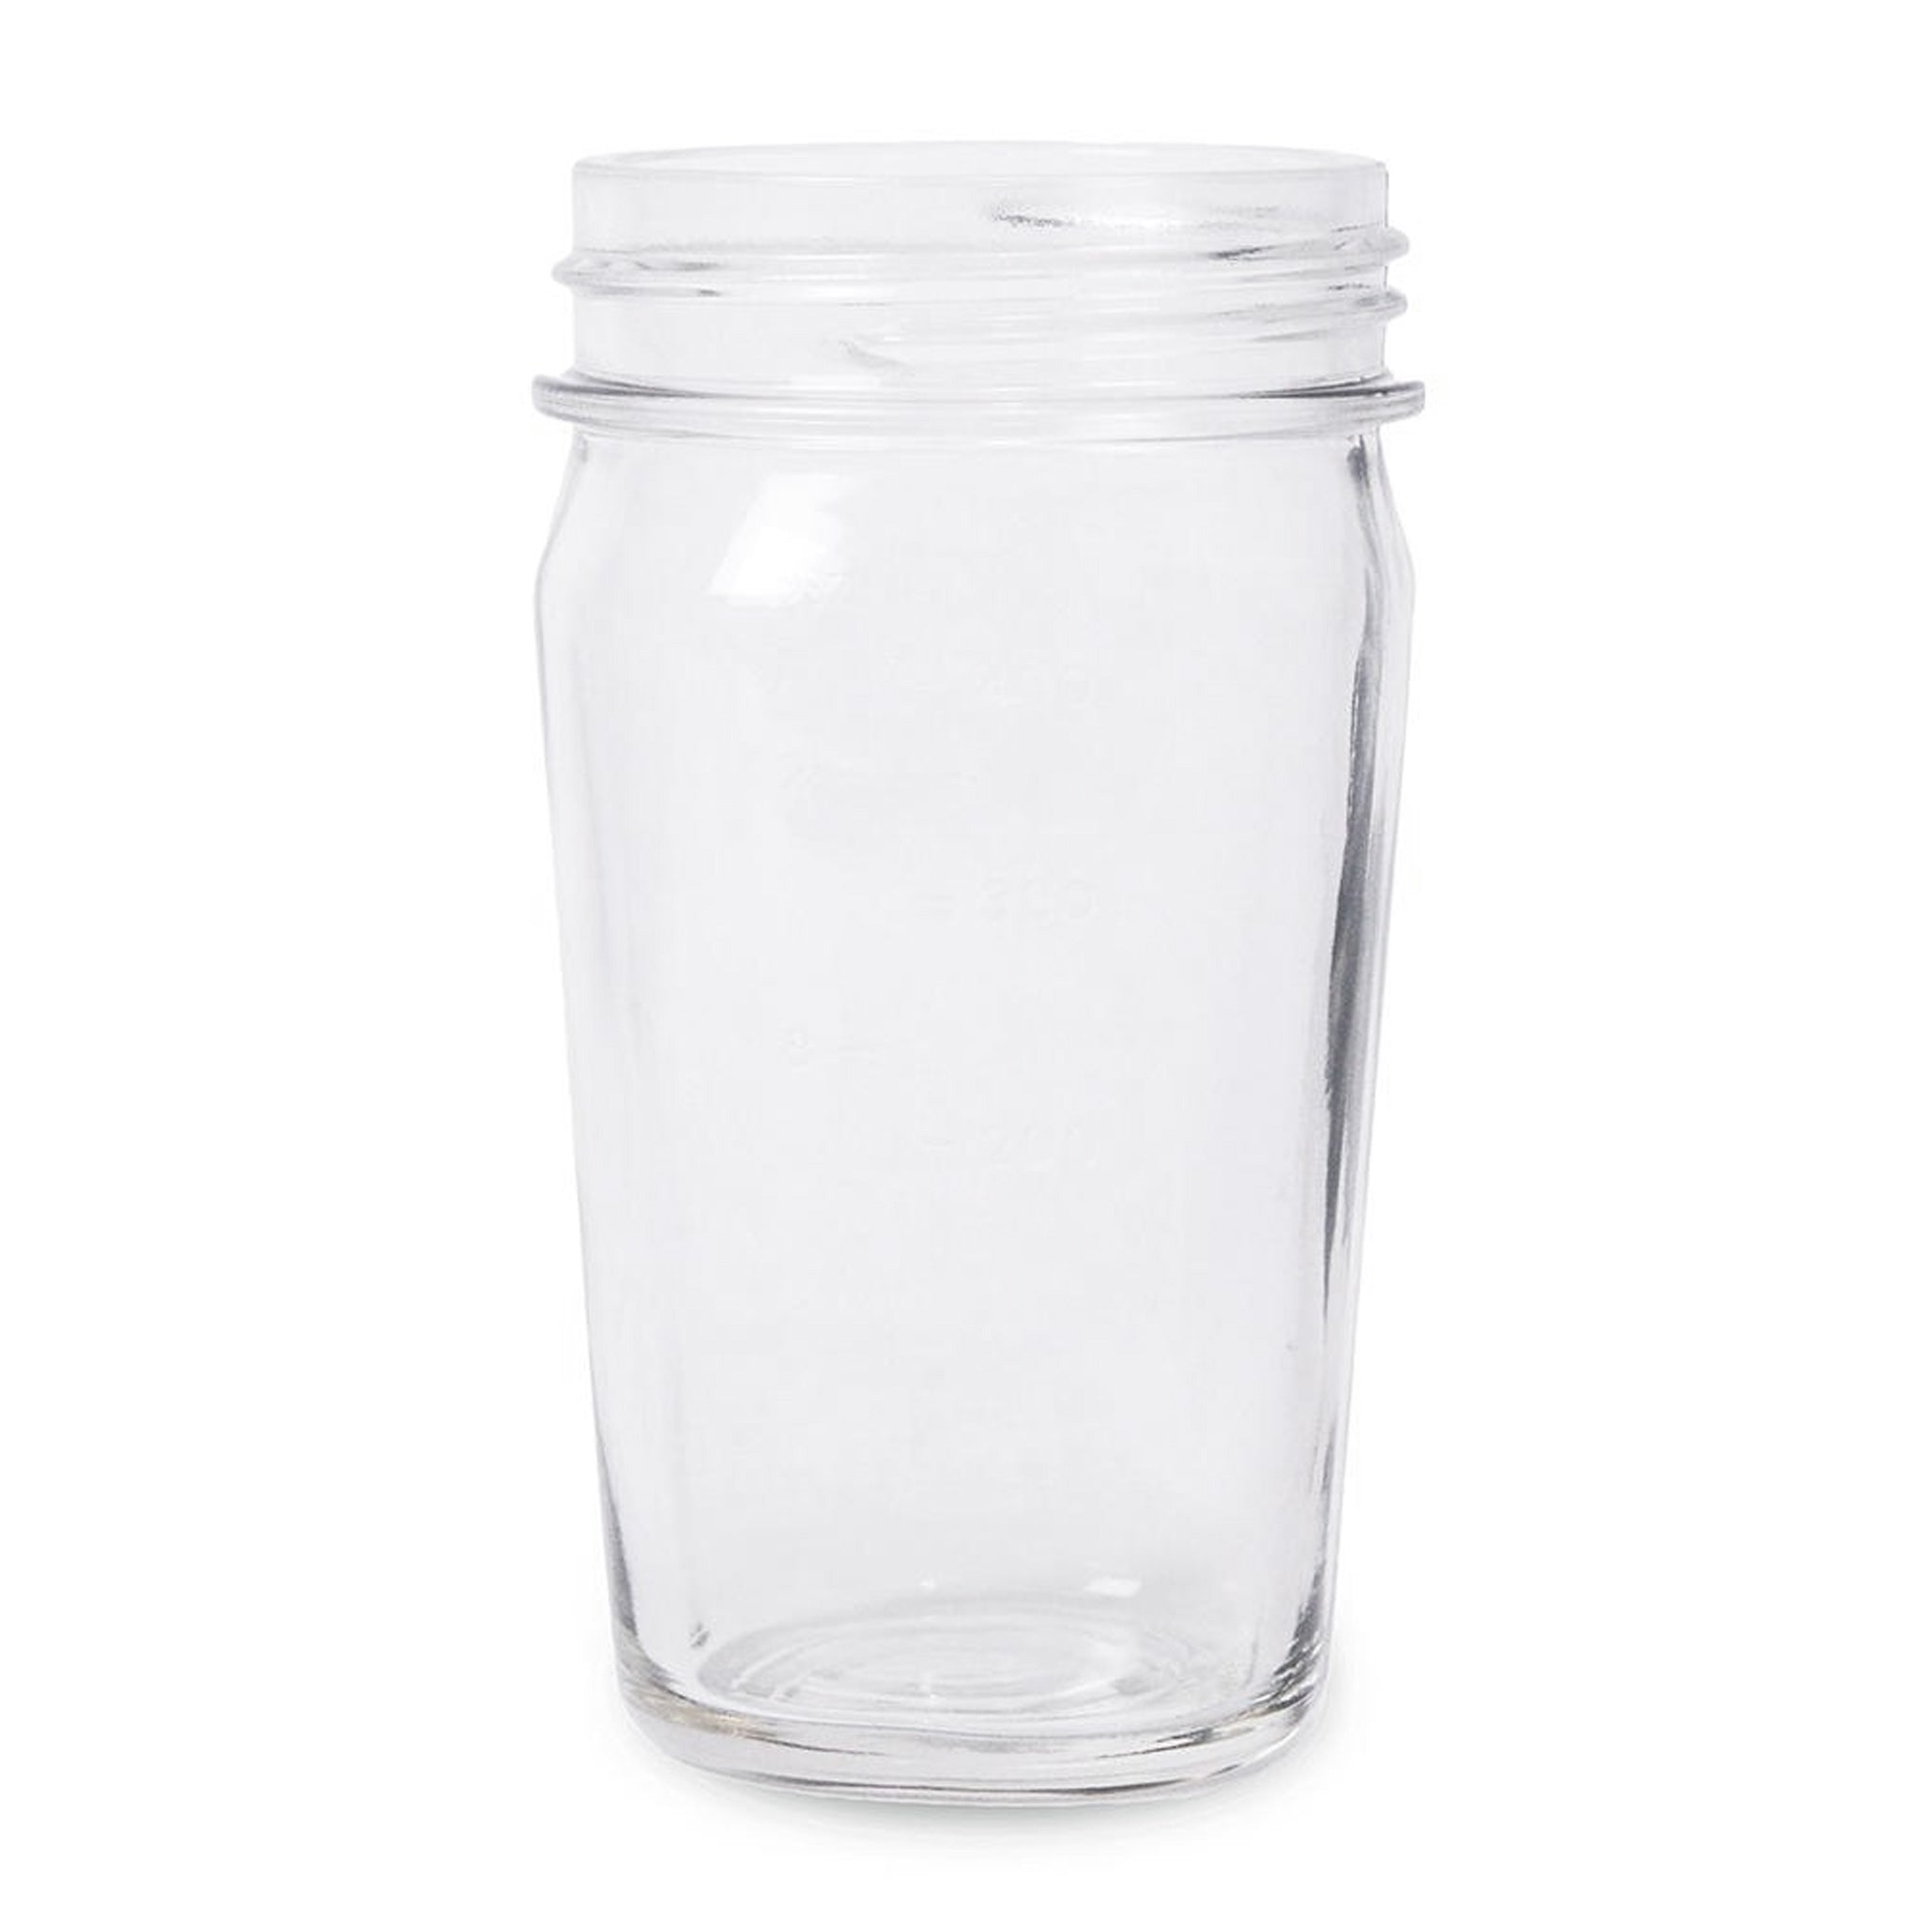 16 oz Glass Container for the Glass Personal Blender®.